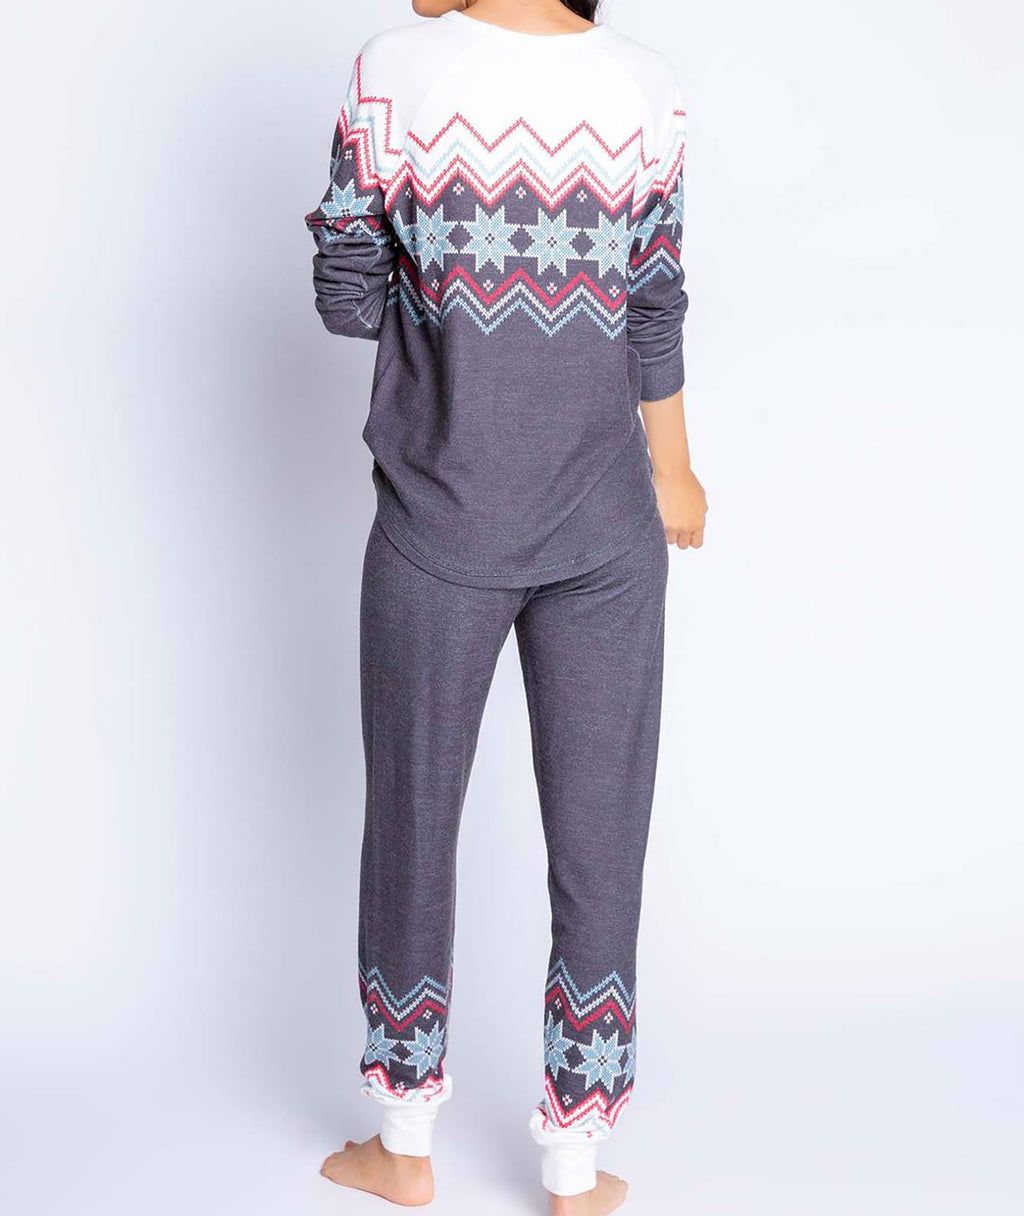 PJ Salvage Fairisle Jam Pants Charcoal